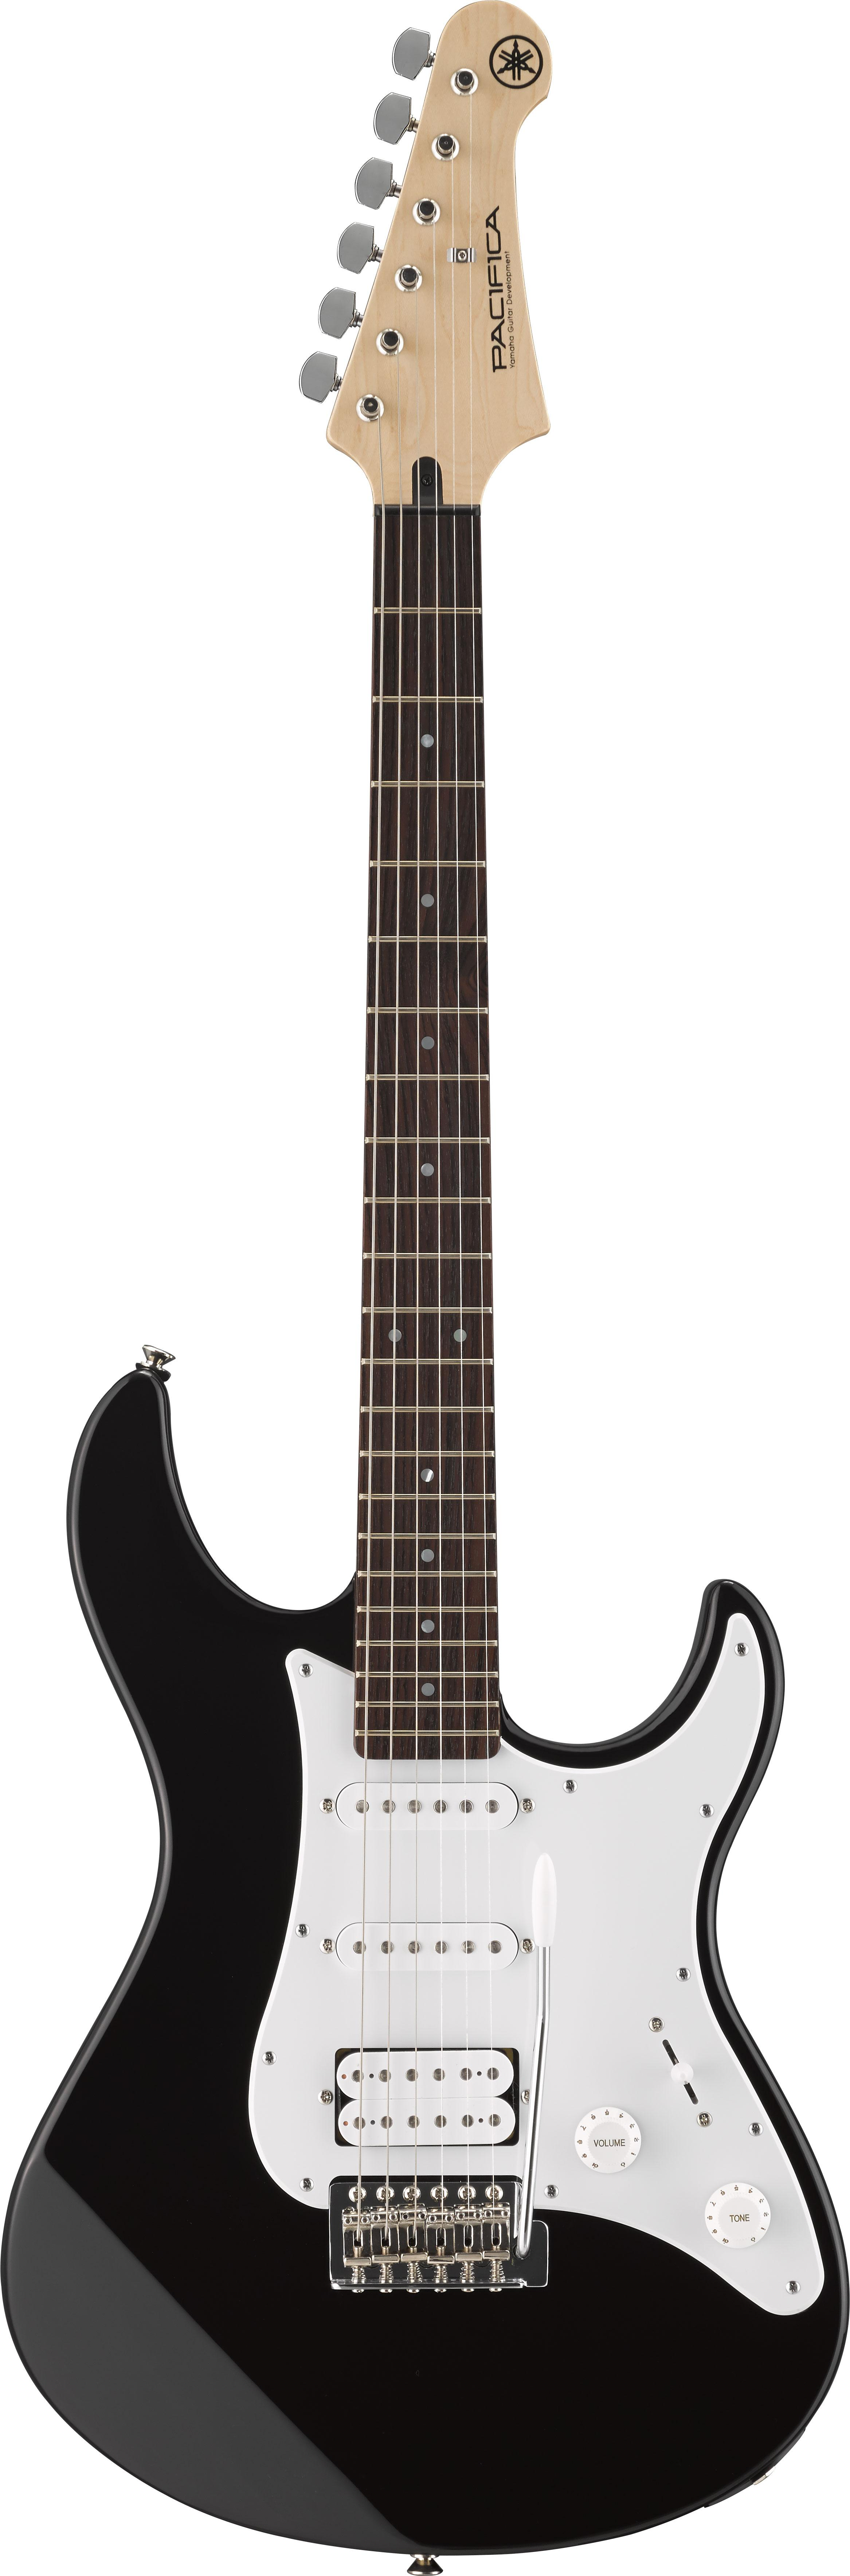 yamaha pacifica 012 full size electric guitar black musical instruments. Black Bedroom Furniture Sets. Home Design Ideas